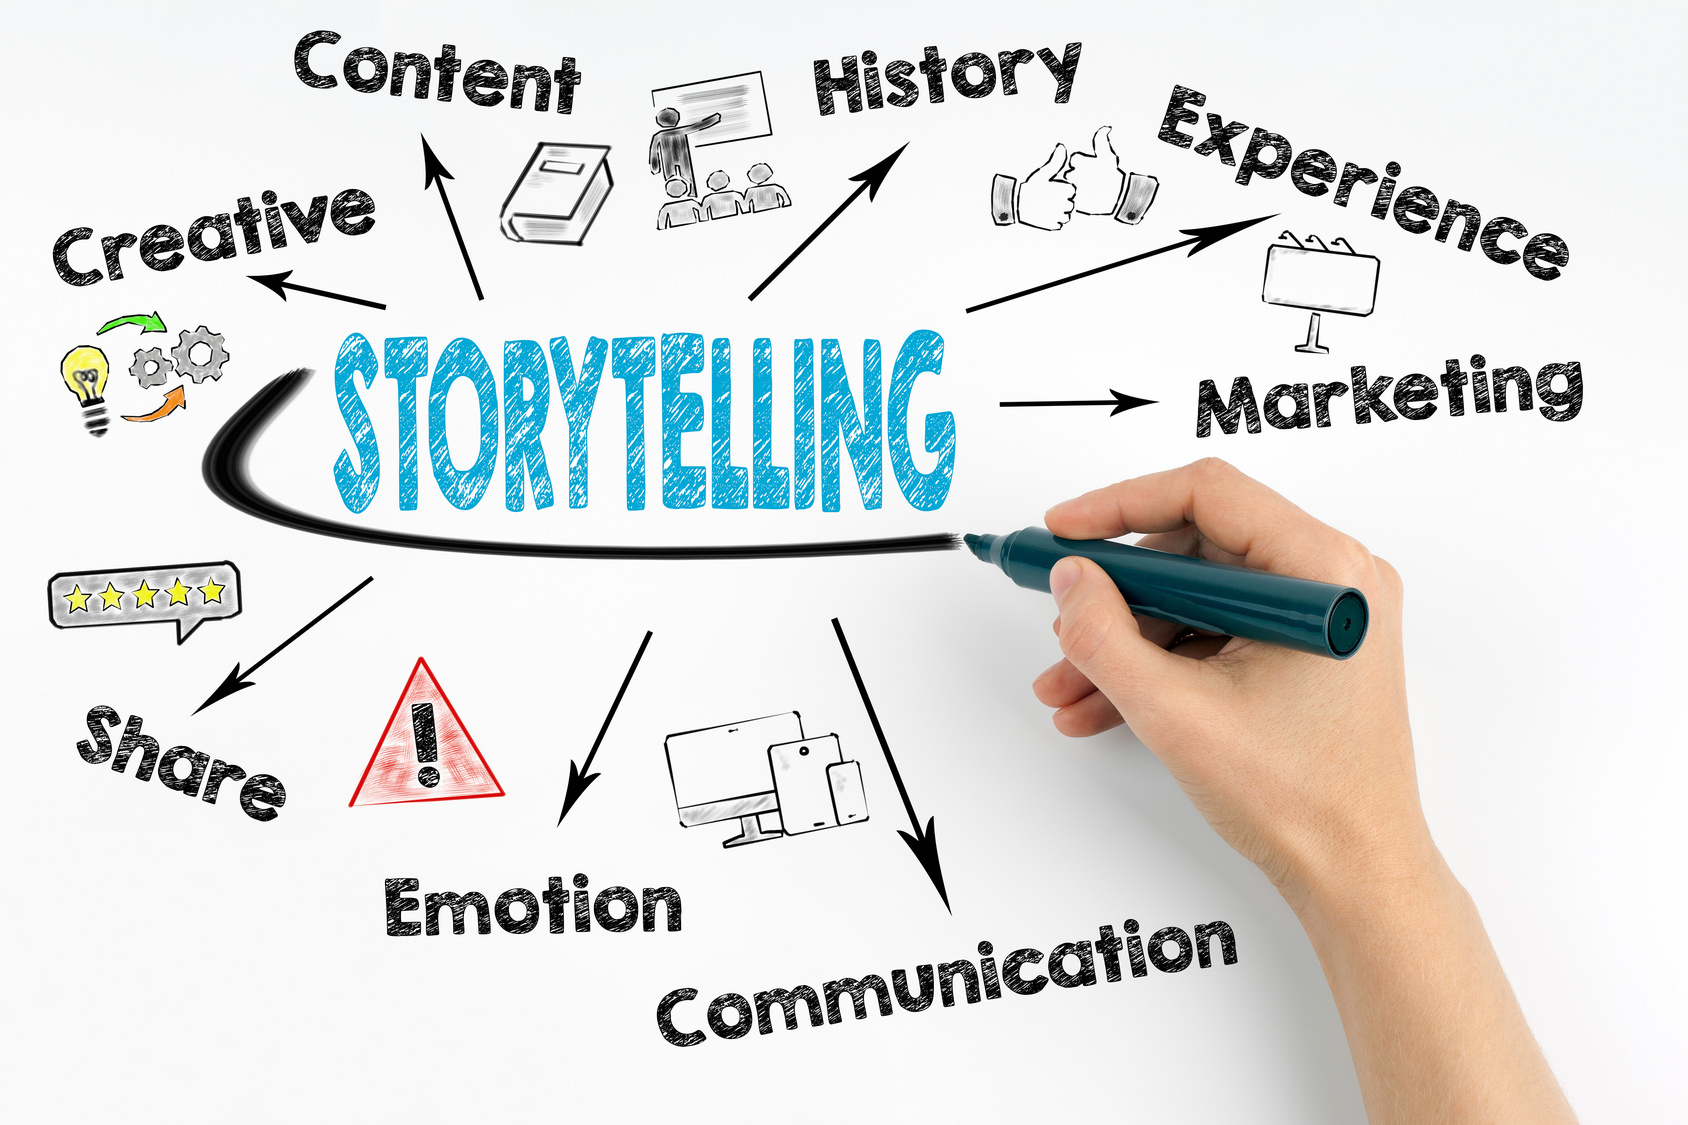 Brand Storytelling 101 6 Must Have Content Elements